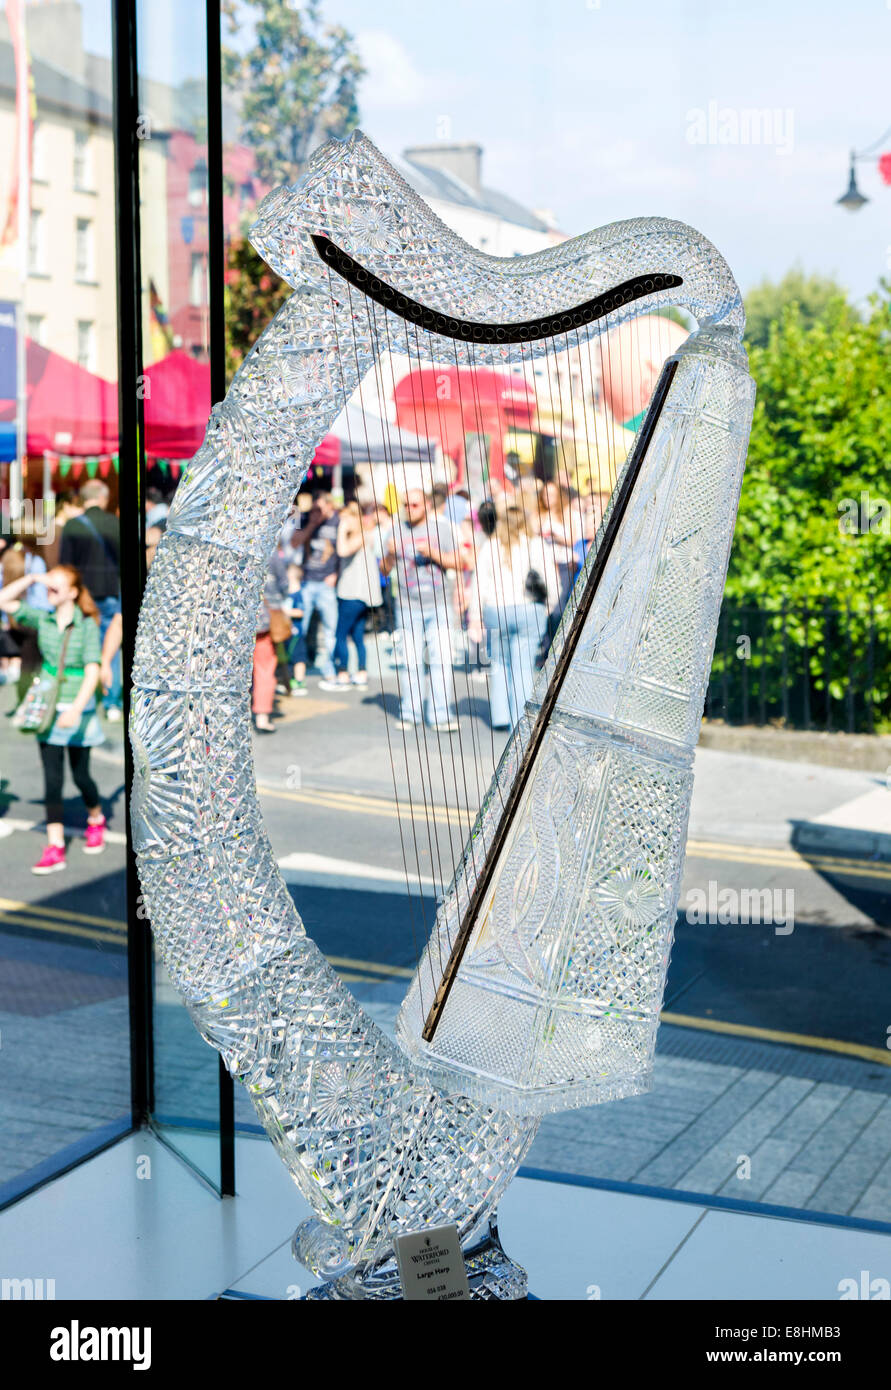 A €30,000 crystal harp in the showroom at the Waterford Crystal factory, Waterford City, County Waterford,  Republic - Stock Image